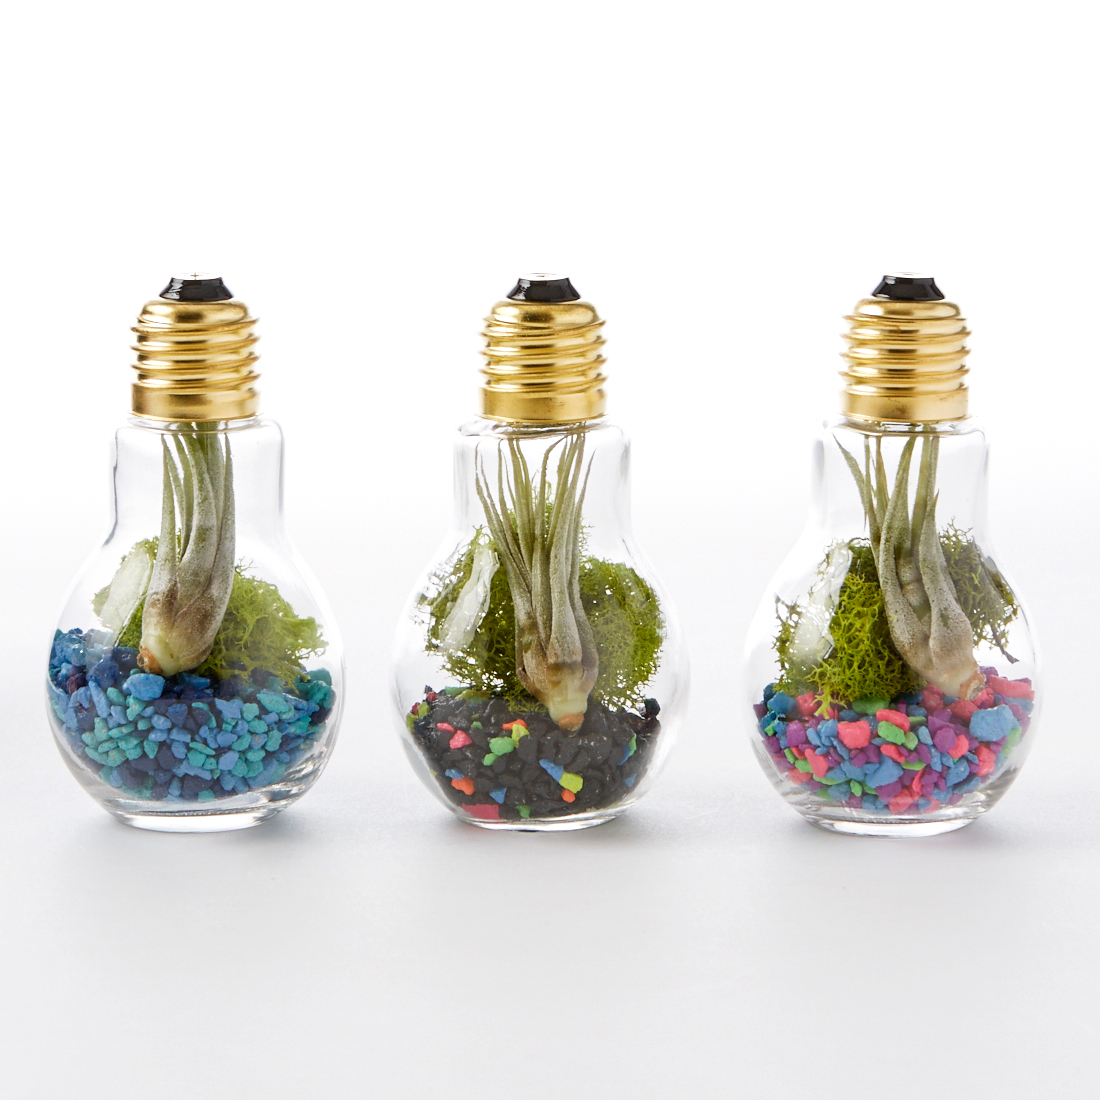 Diy Light Bulb Terrarium 41401 on electric lamp